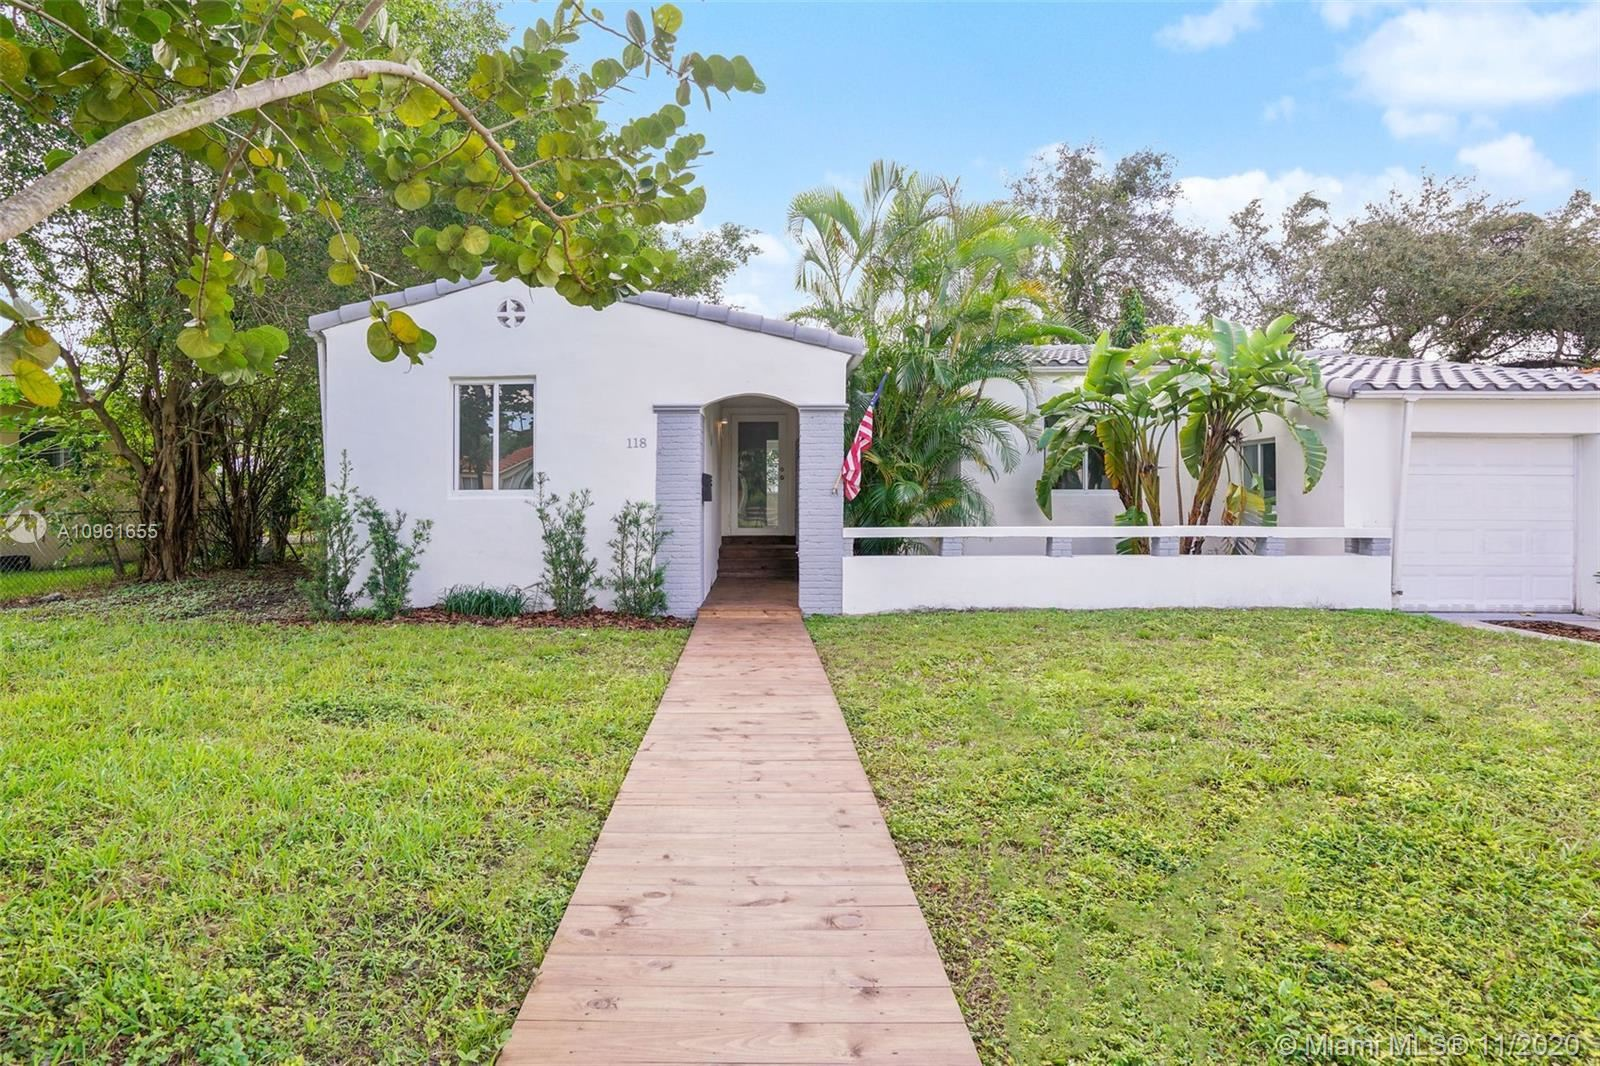 118 NW 103rd St, Miami Shores, FL 33150 - #: A10961655